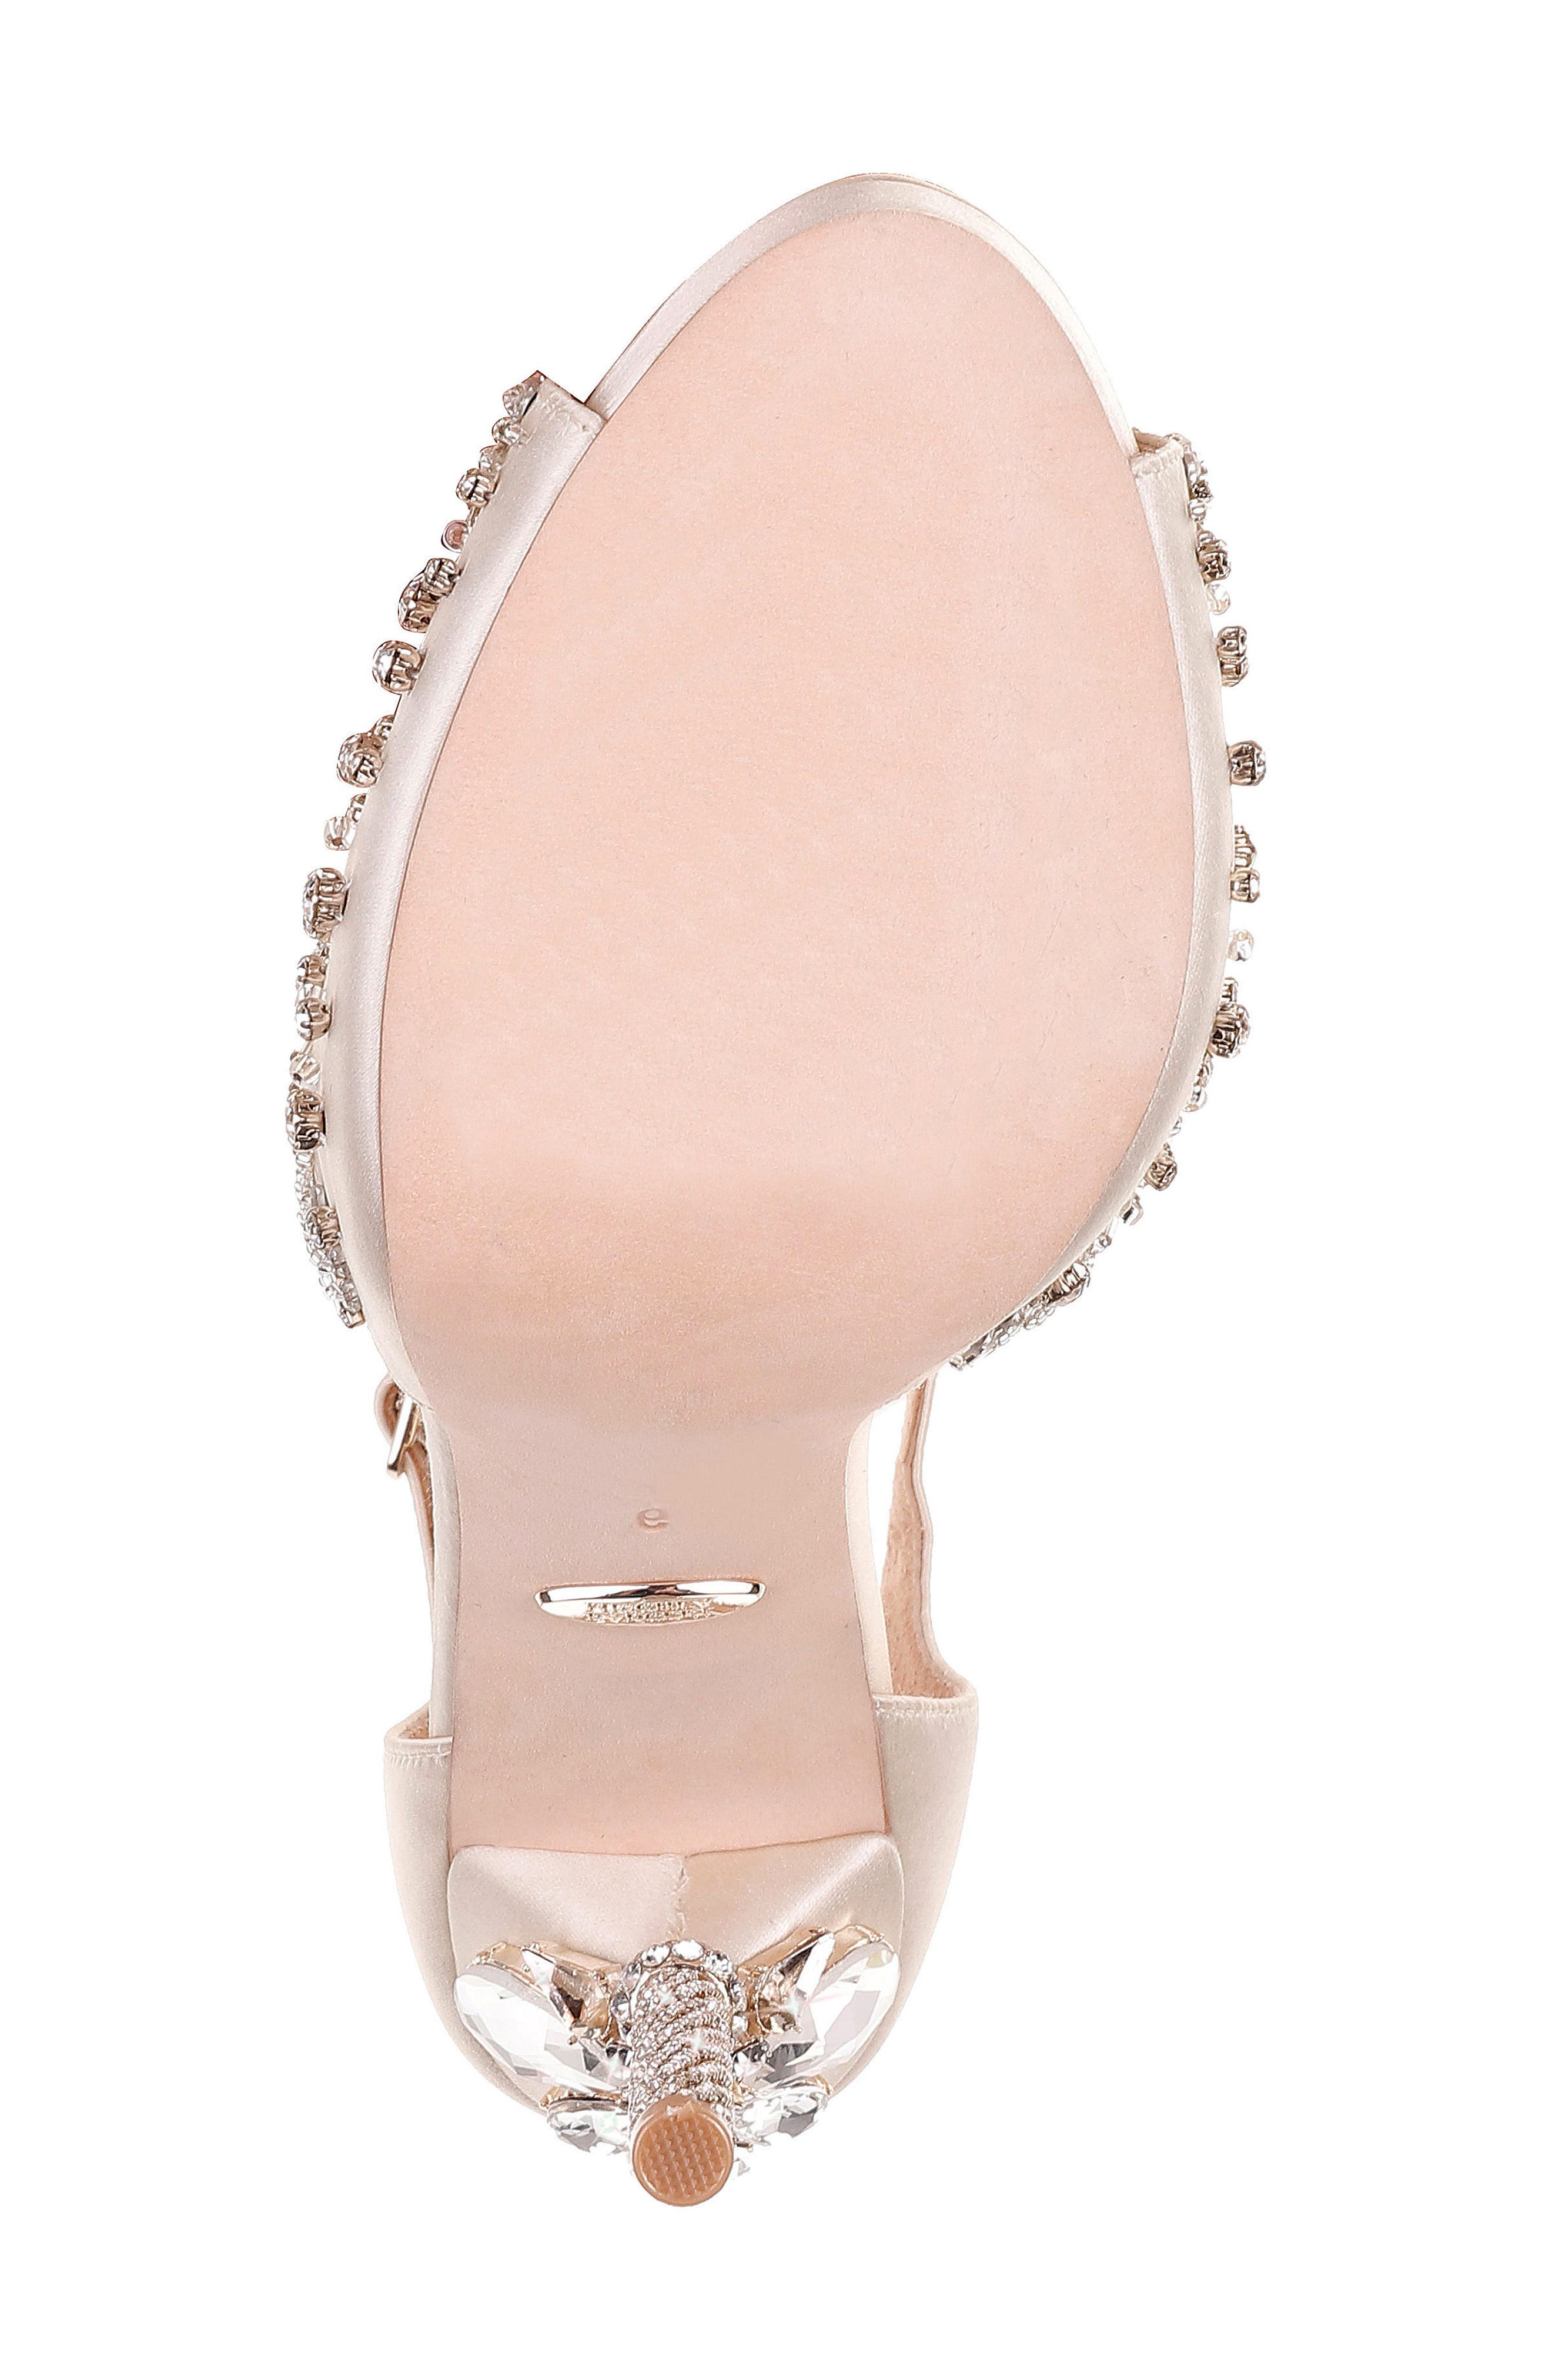 Stacey Crystal Embellished T-Strap Sandal,                             Alternate thumbnail 6, color,                             Ivory Satin